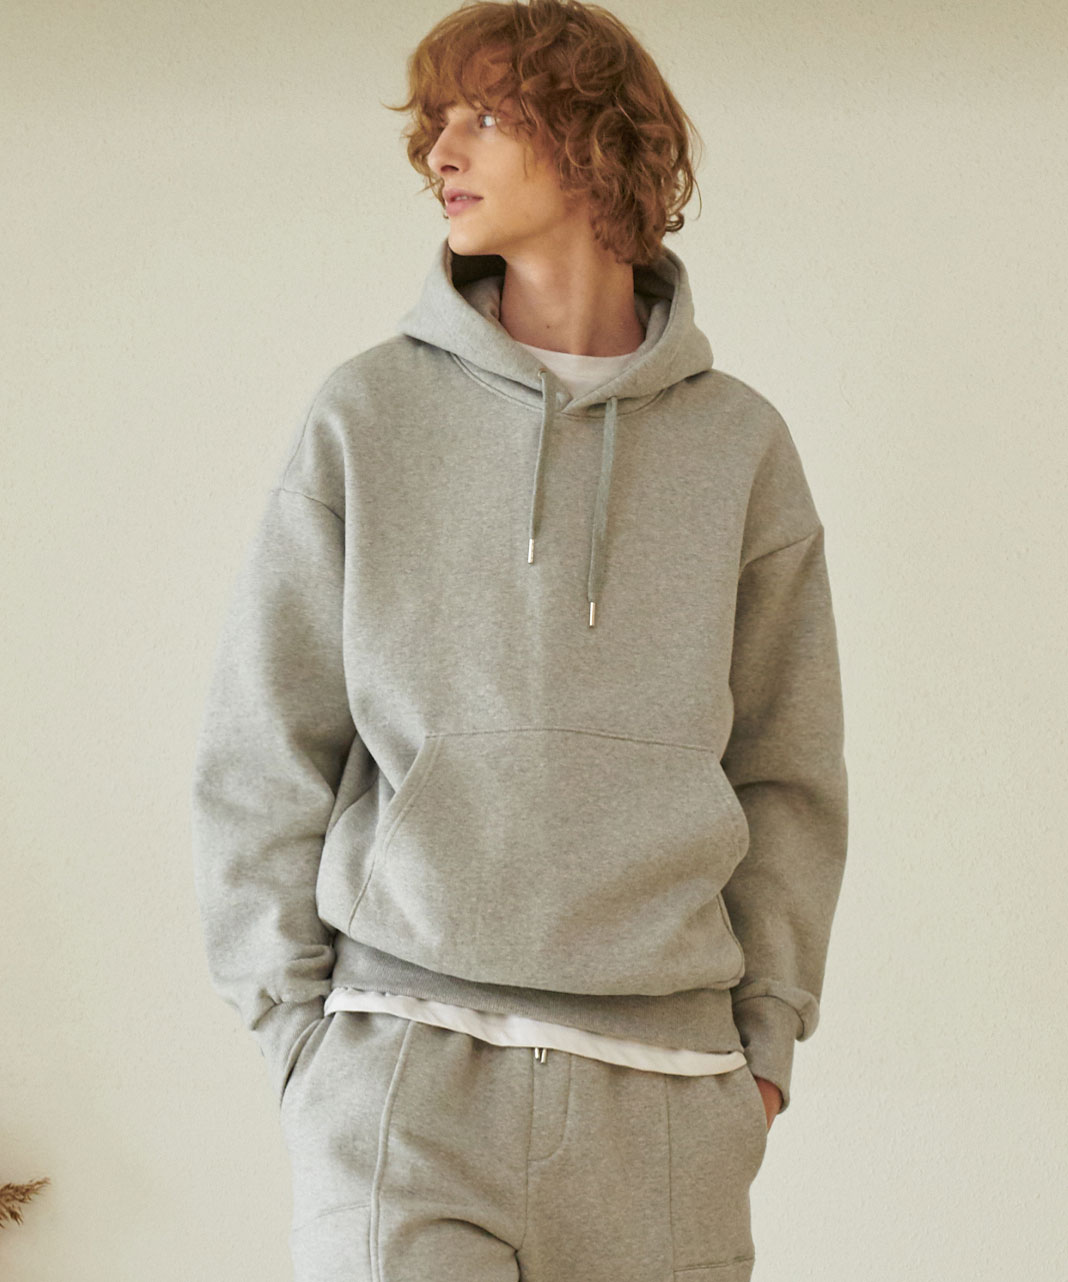 TA-131 BP-ELBOW HOODY_GY